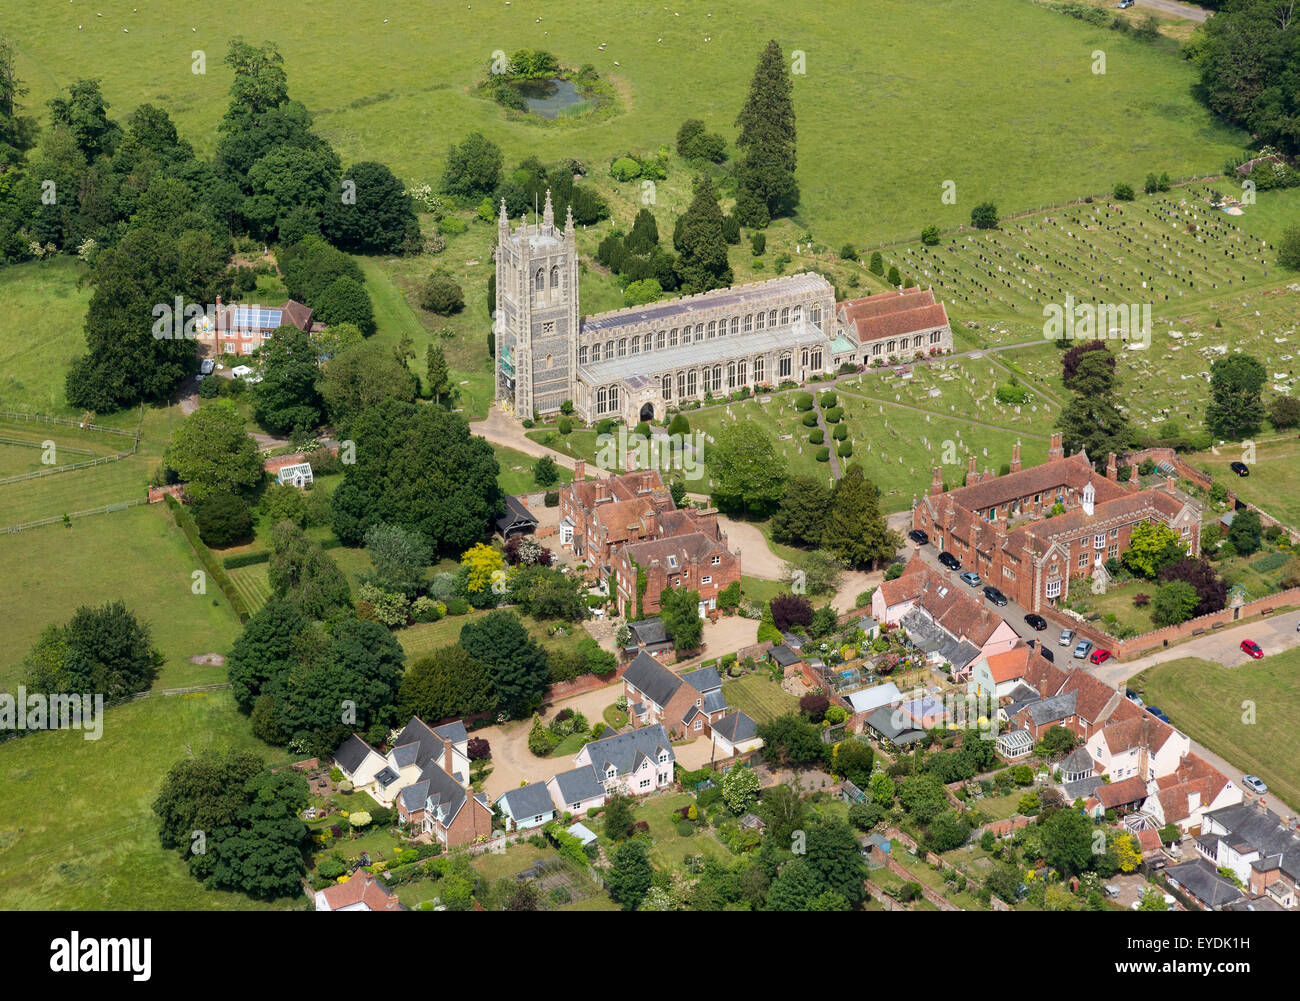 Holy Trinity Church in Long Melford village in Suffolk, UK - Stock Image